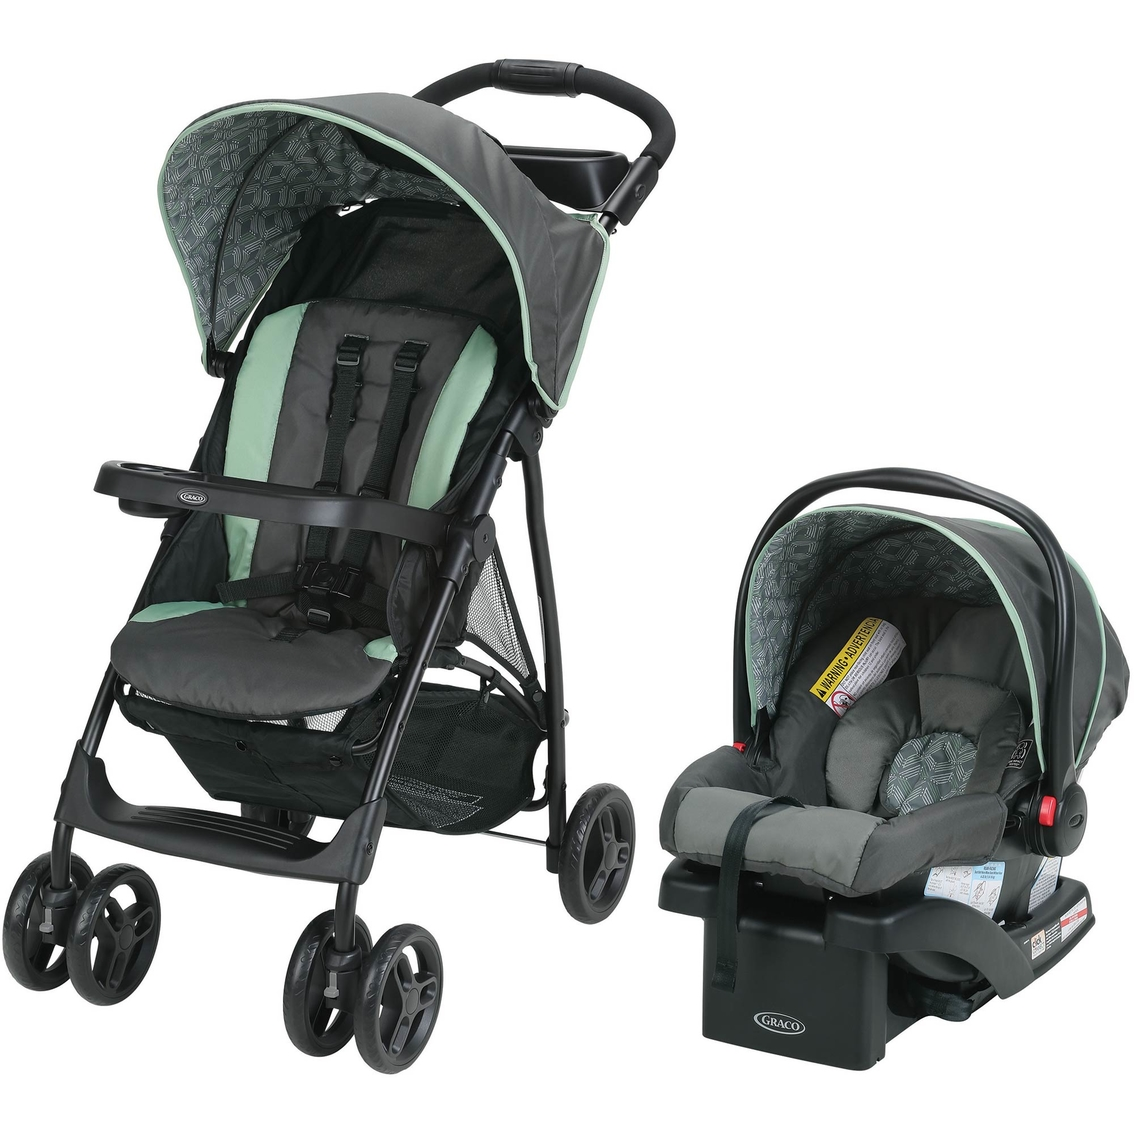 Graco Literider LX Travel System With SnugRide 30 Infant Car Seat